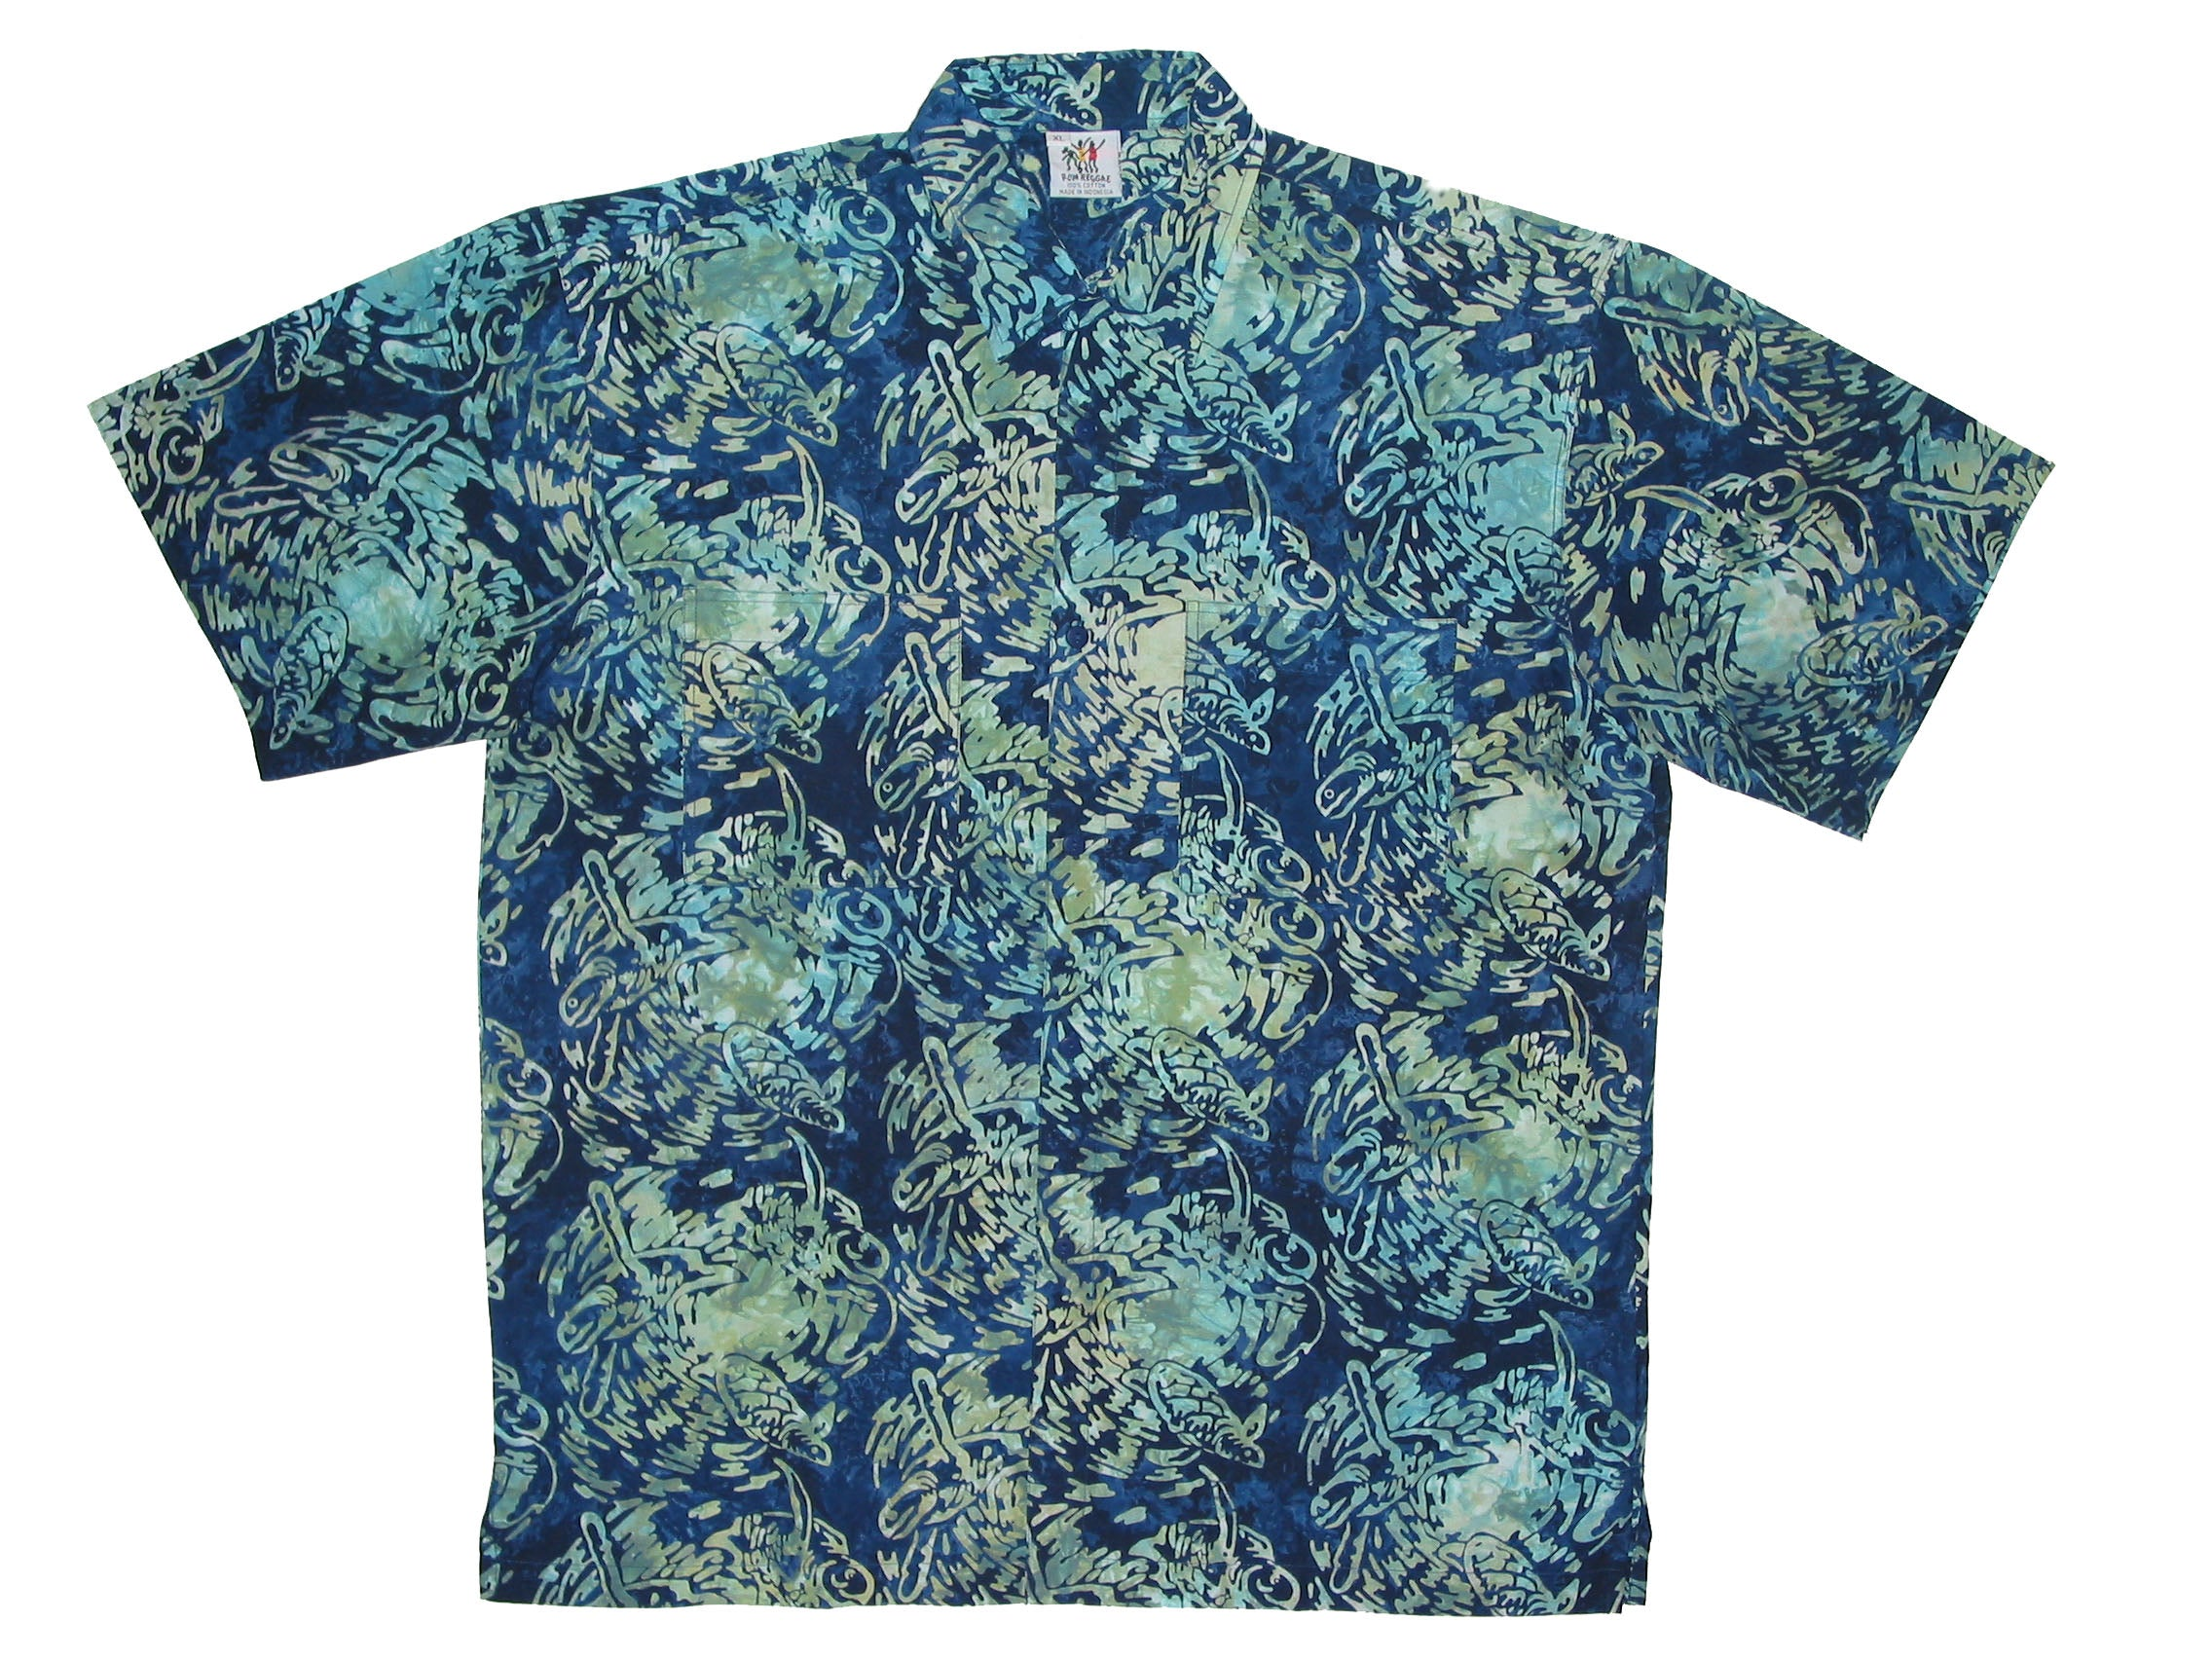 Cabana Shirt - Swirling Turtle